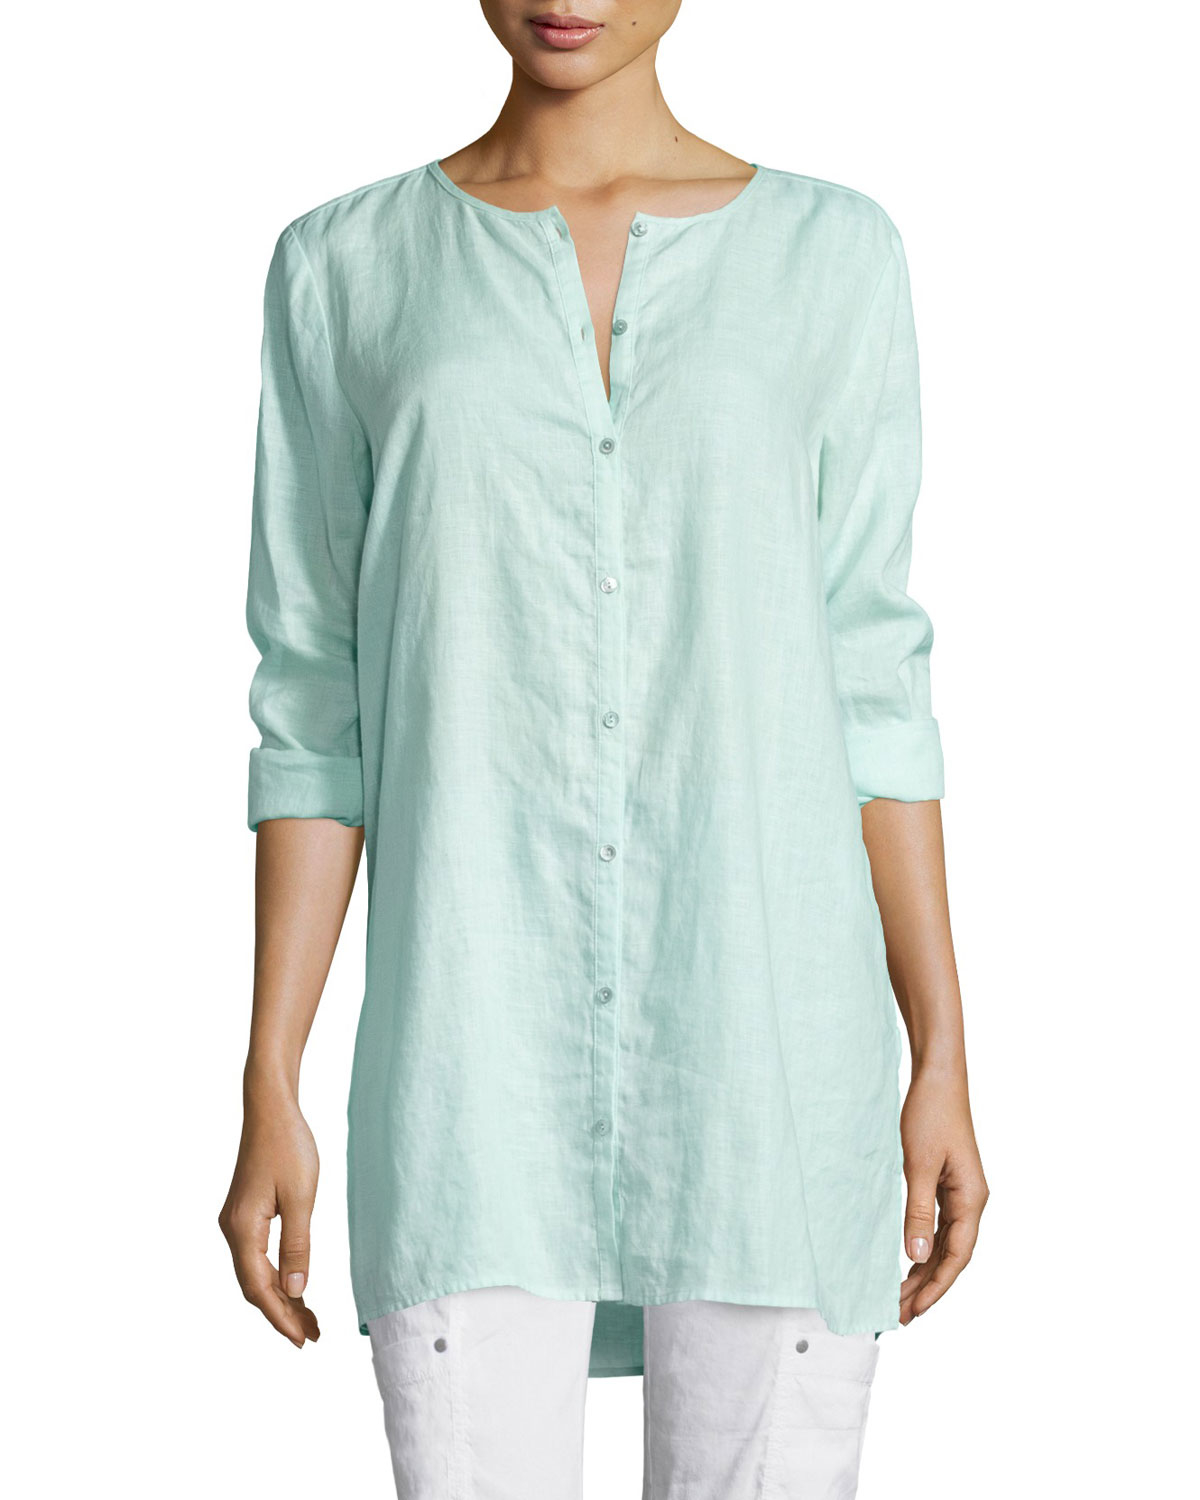 Linen Shirts For Women. Long ago linen was limited to use by the wealthy because it was difficult to produce and care for. Lucky for us all, these days linen—while still considered a stylish and luxurious fabric—is plentiful and used for things like tablecloths, napkins and bedding—and linen shirts .